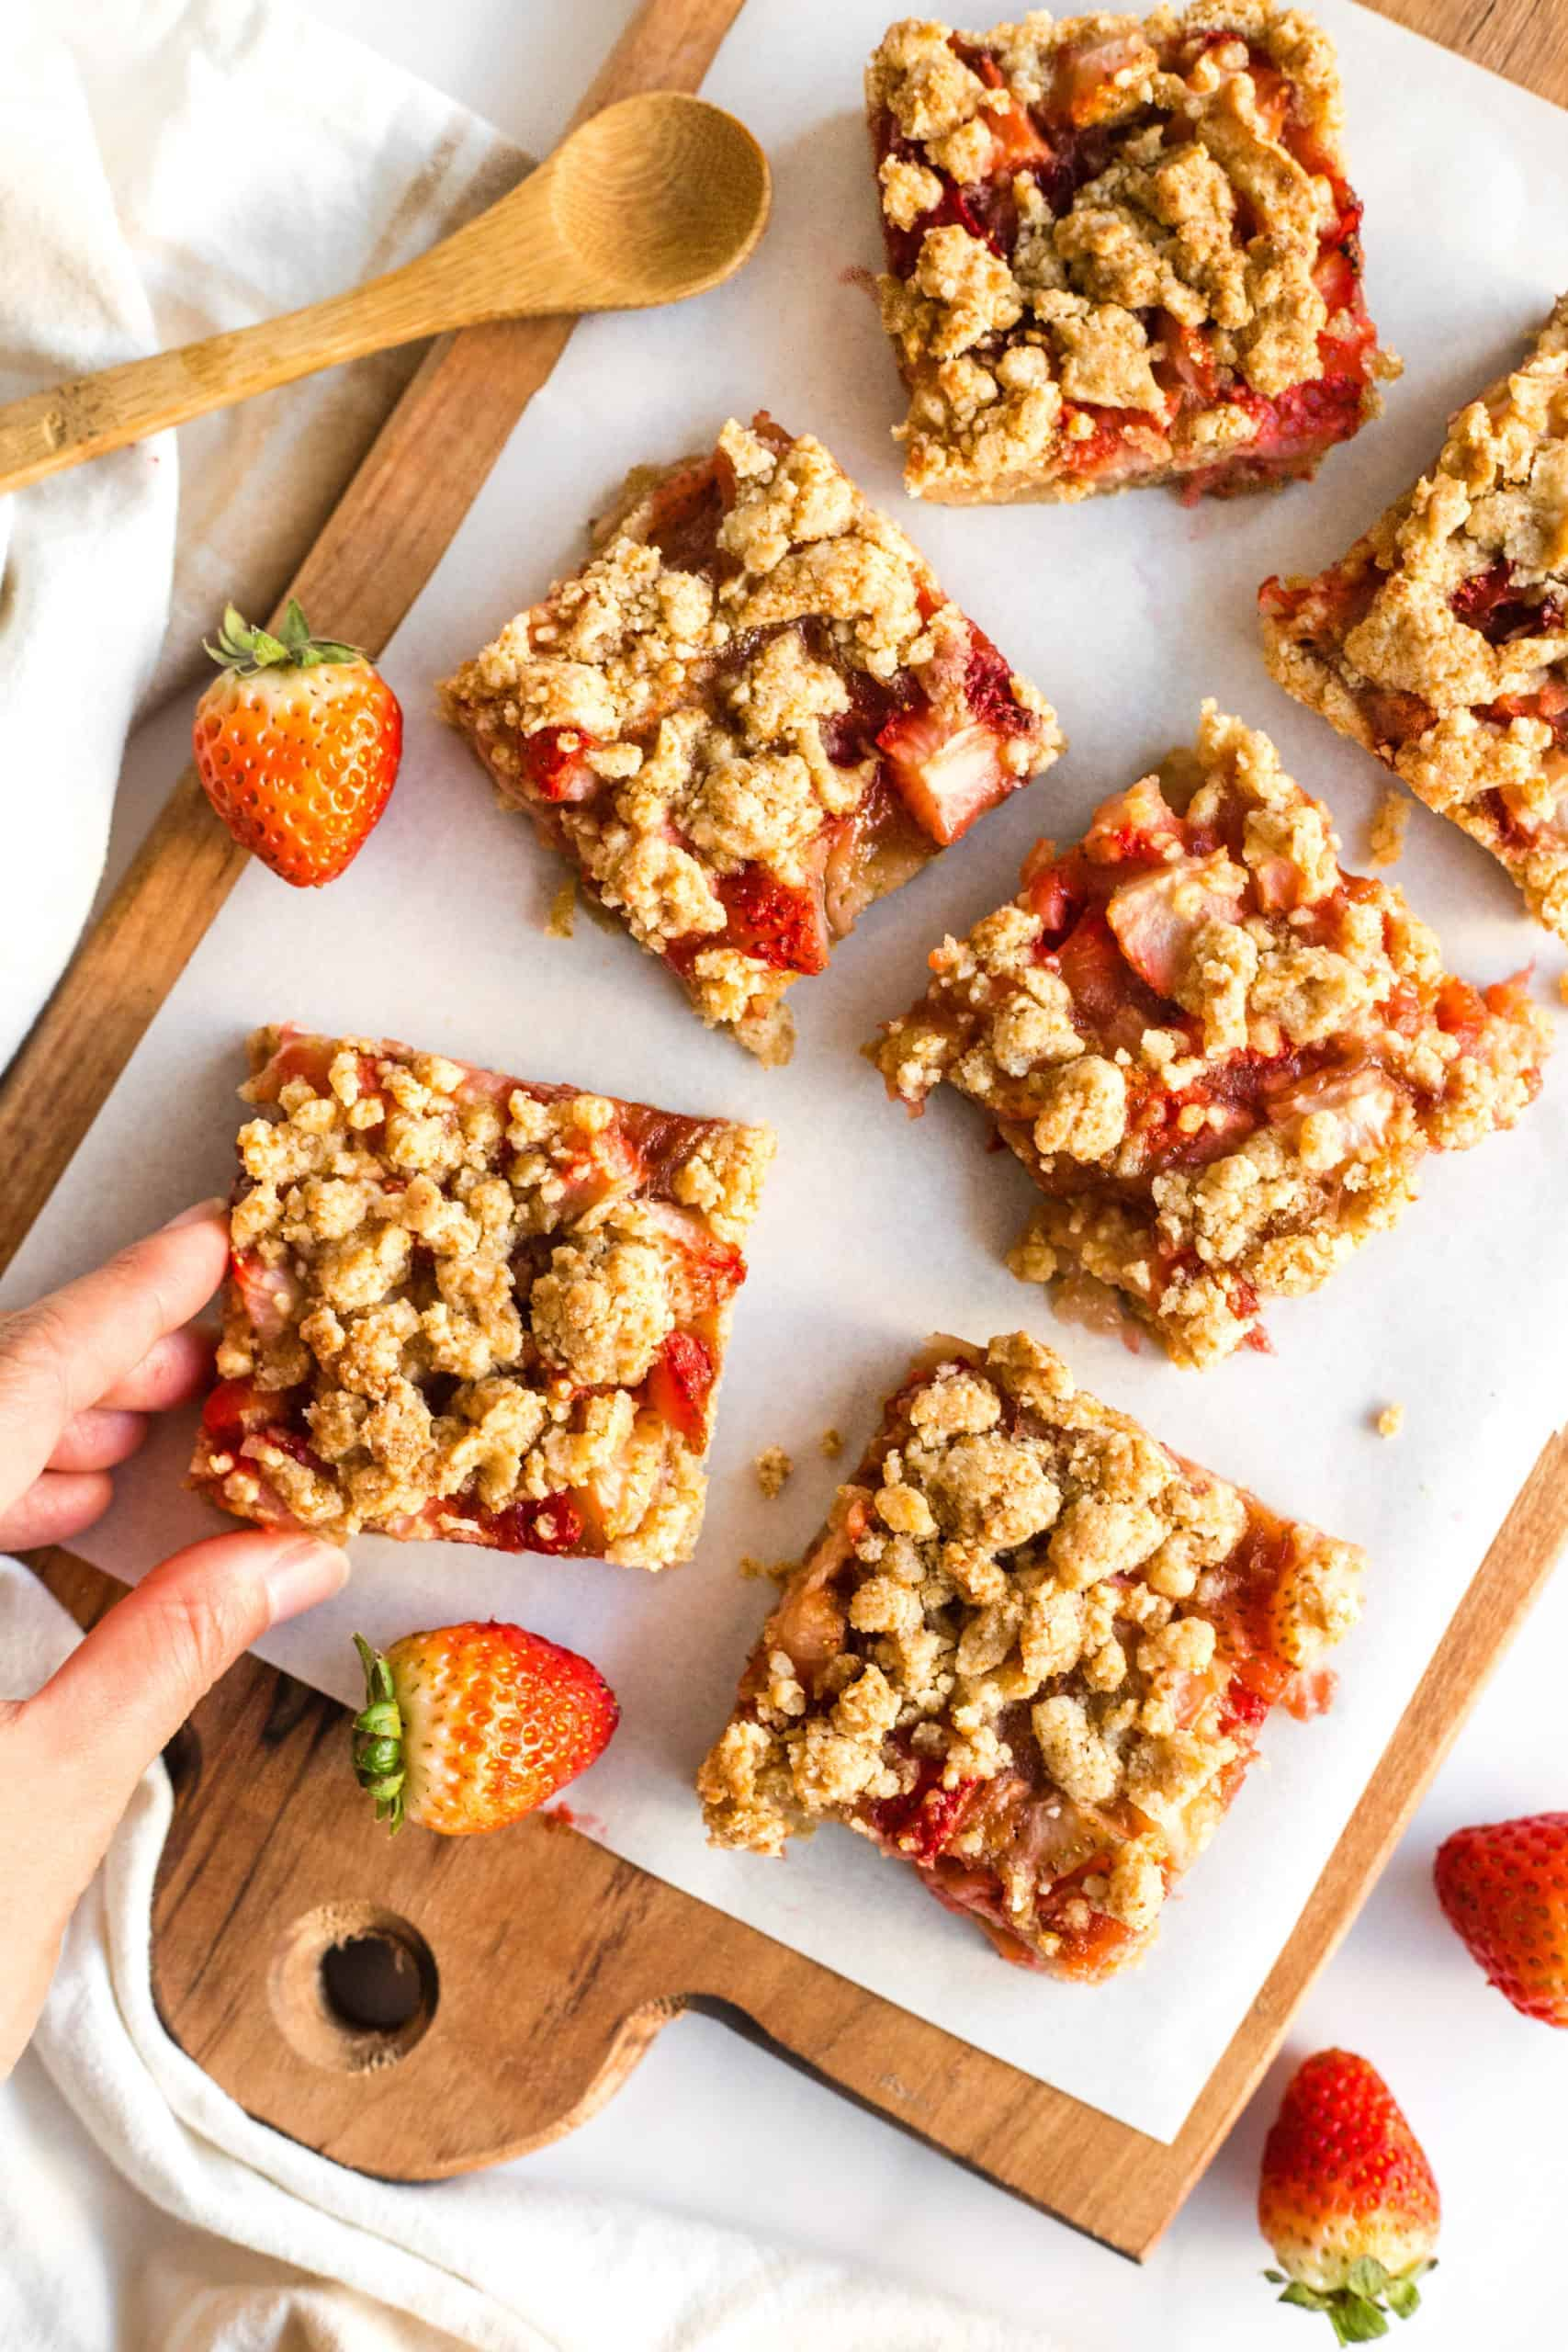 Gluten-Free Strawberry Crumb Bars on a parchment-lined wooden board.